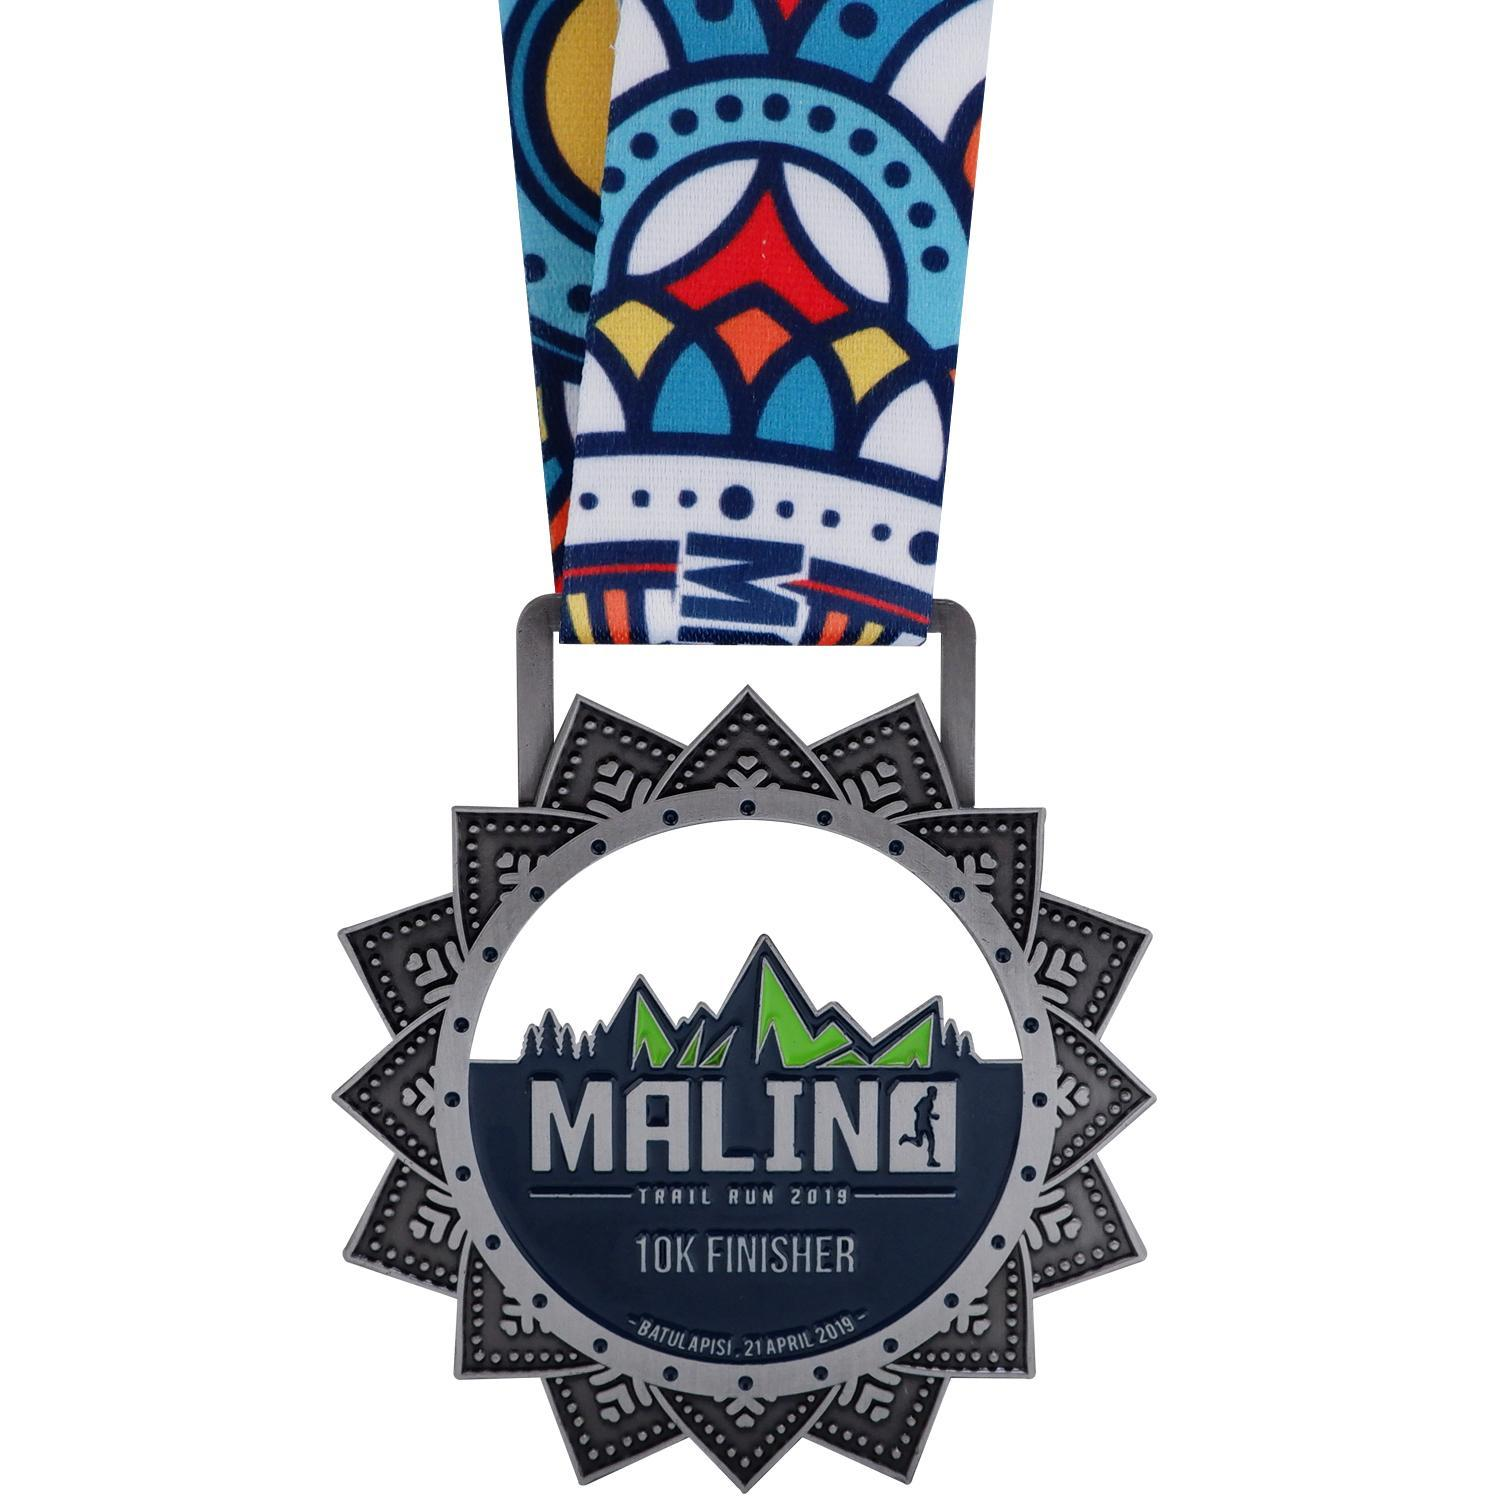 Malino Trail Run 2019